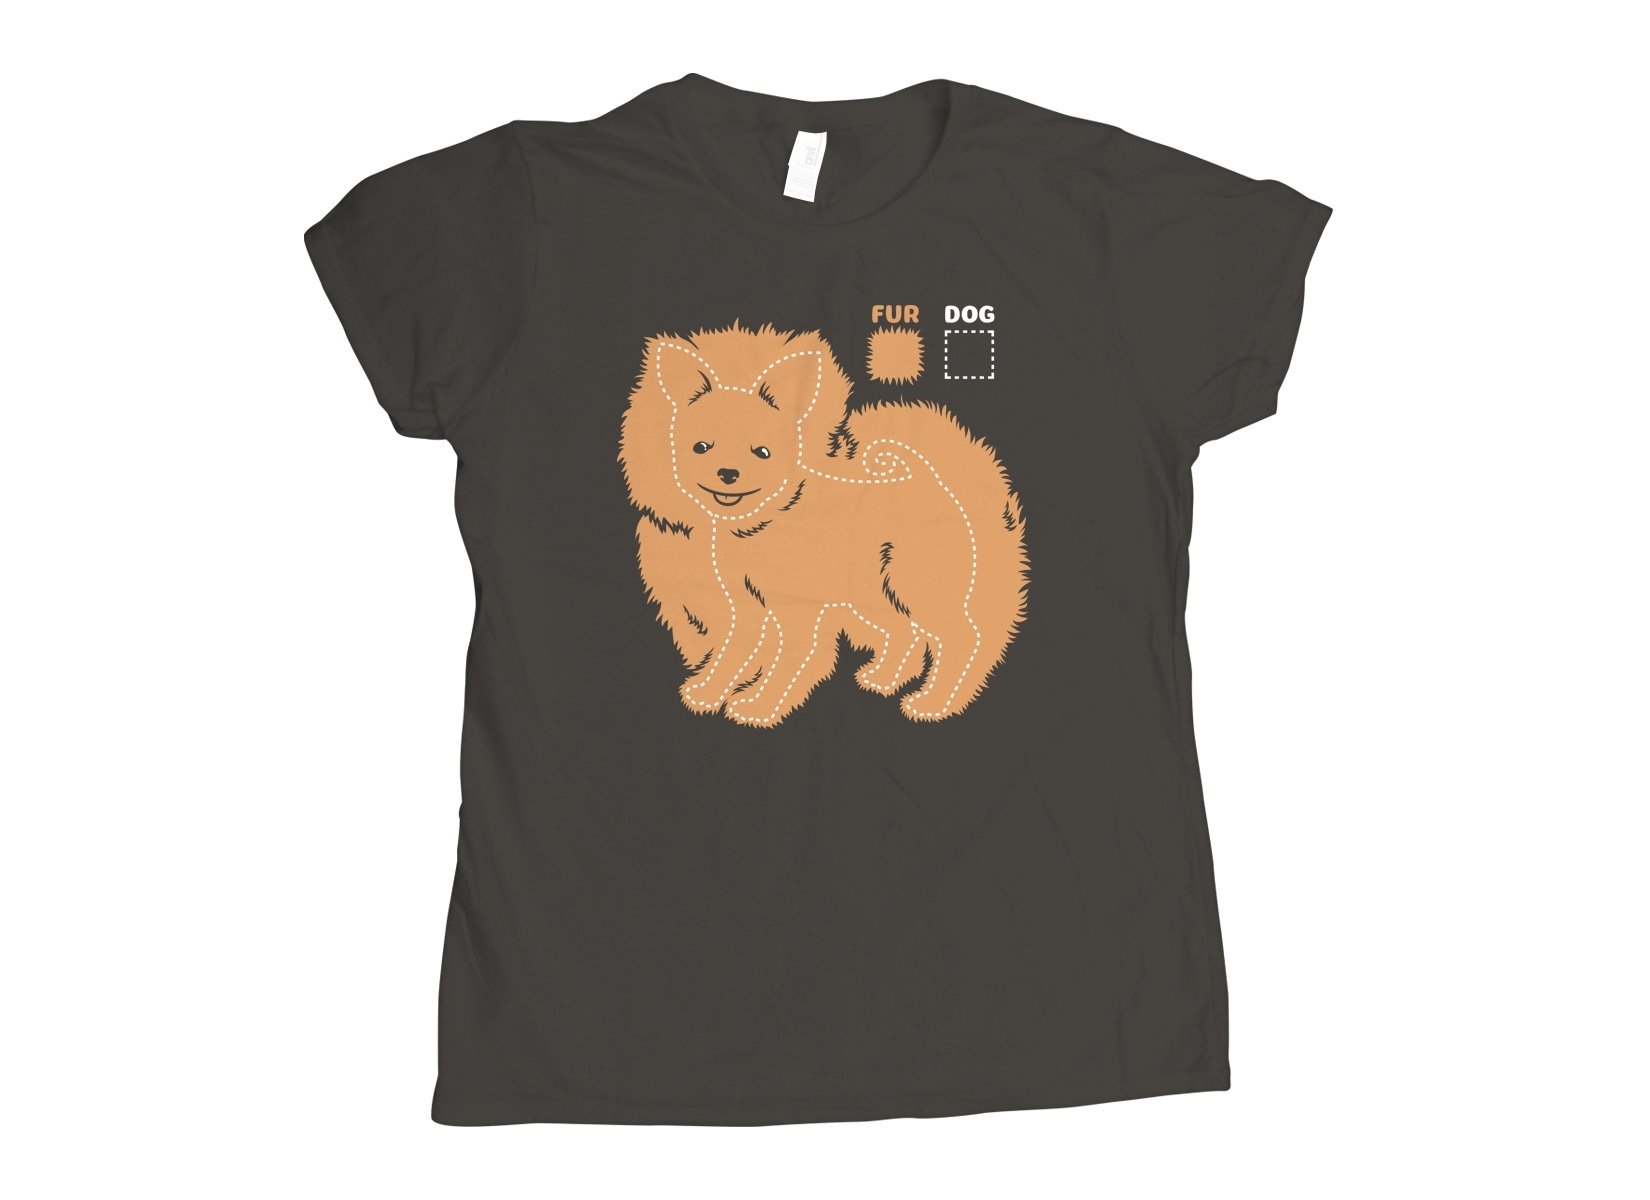 Dog vs Fur Pomeranian on Womens T-Shirt